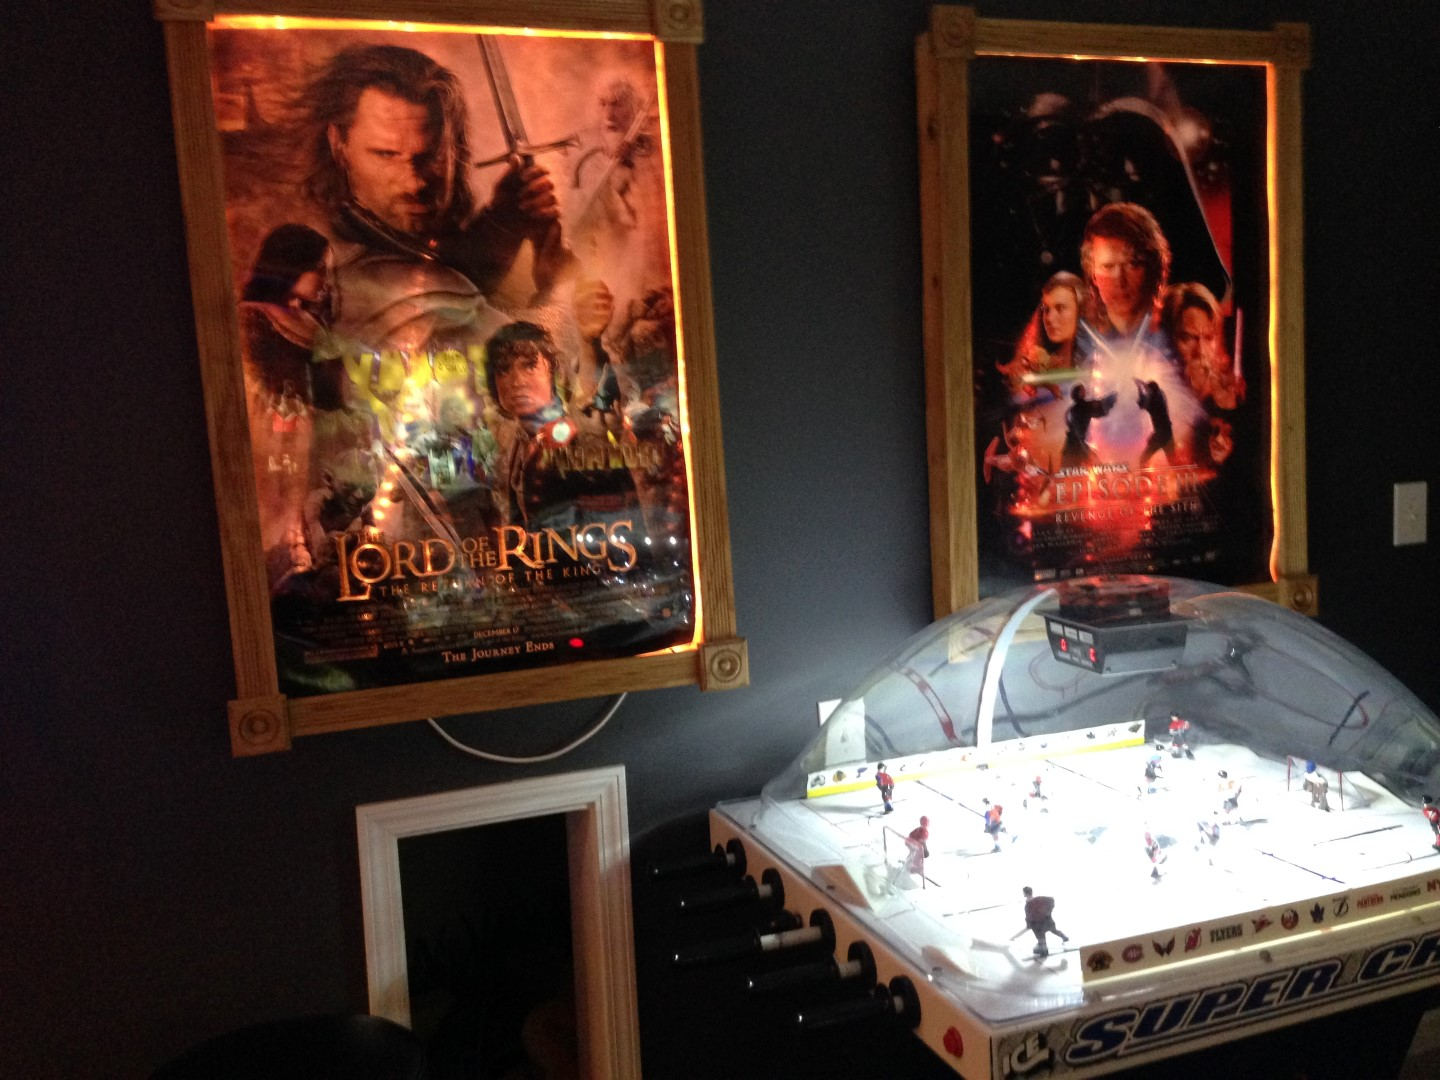 Chexx bubble hockey with lighted movie posters